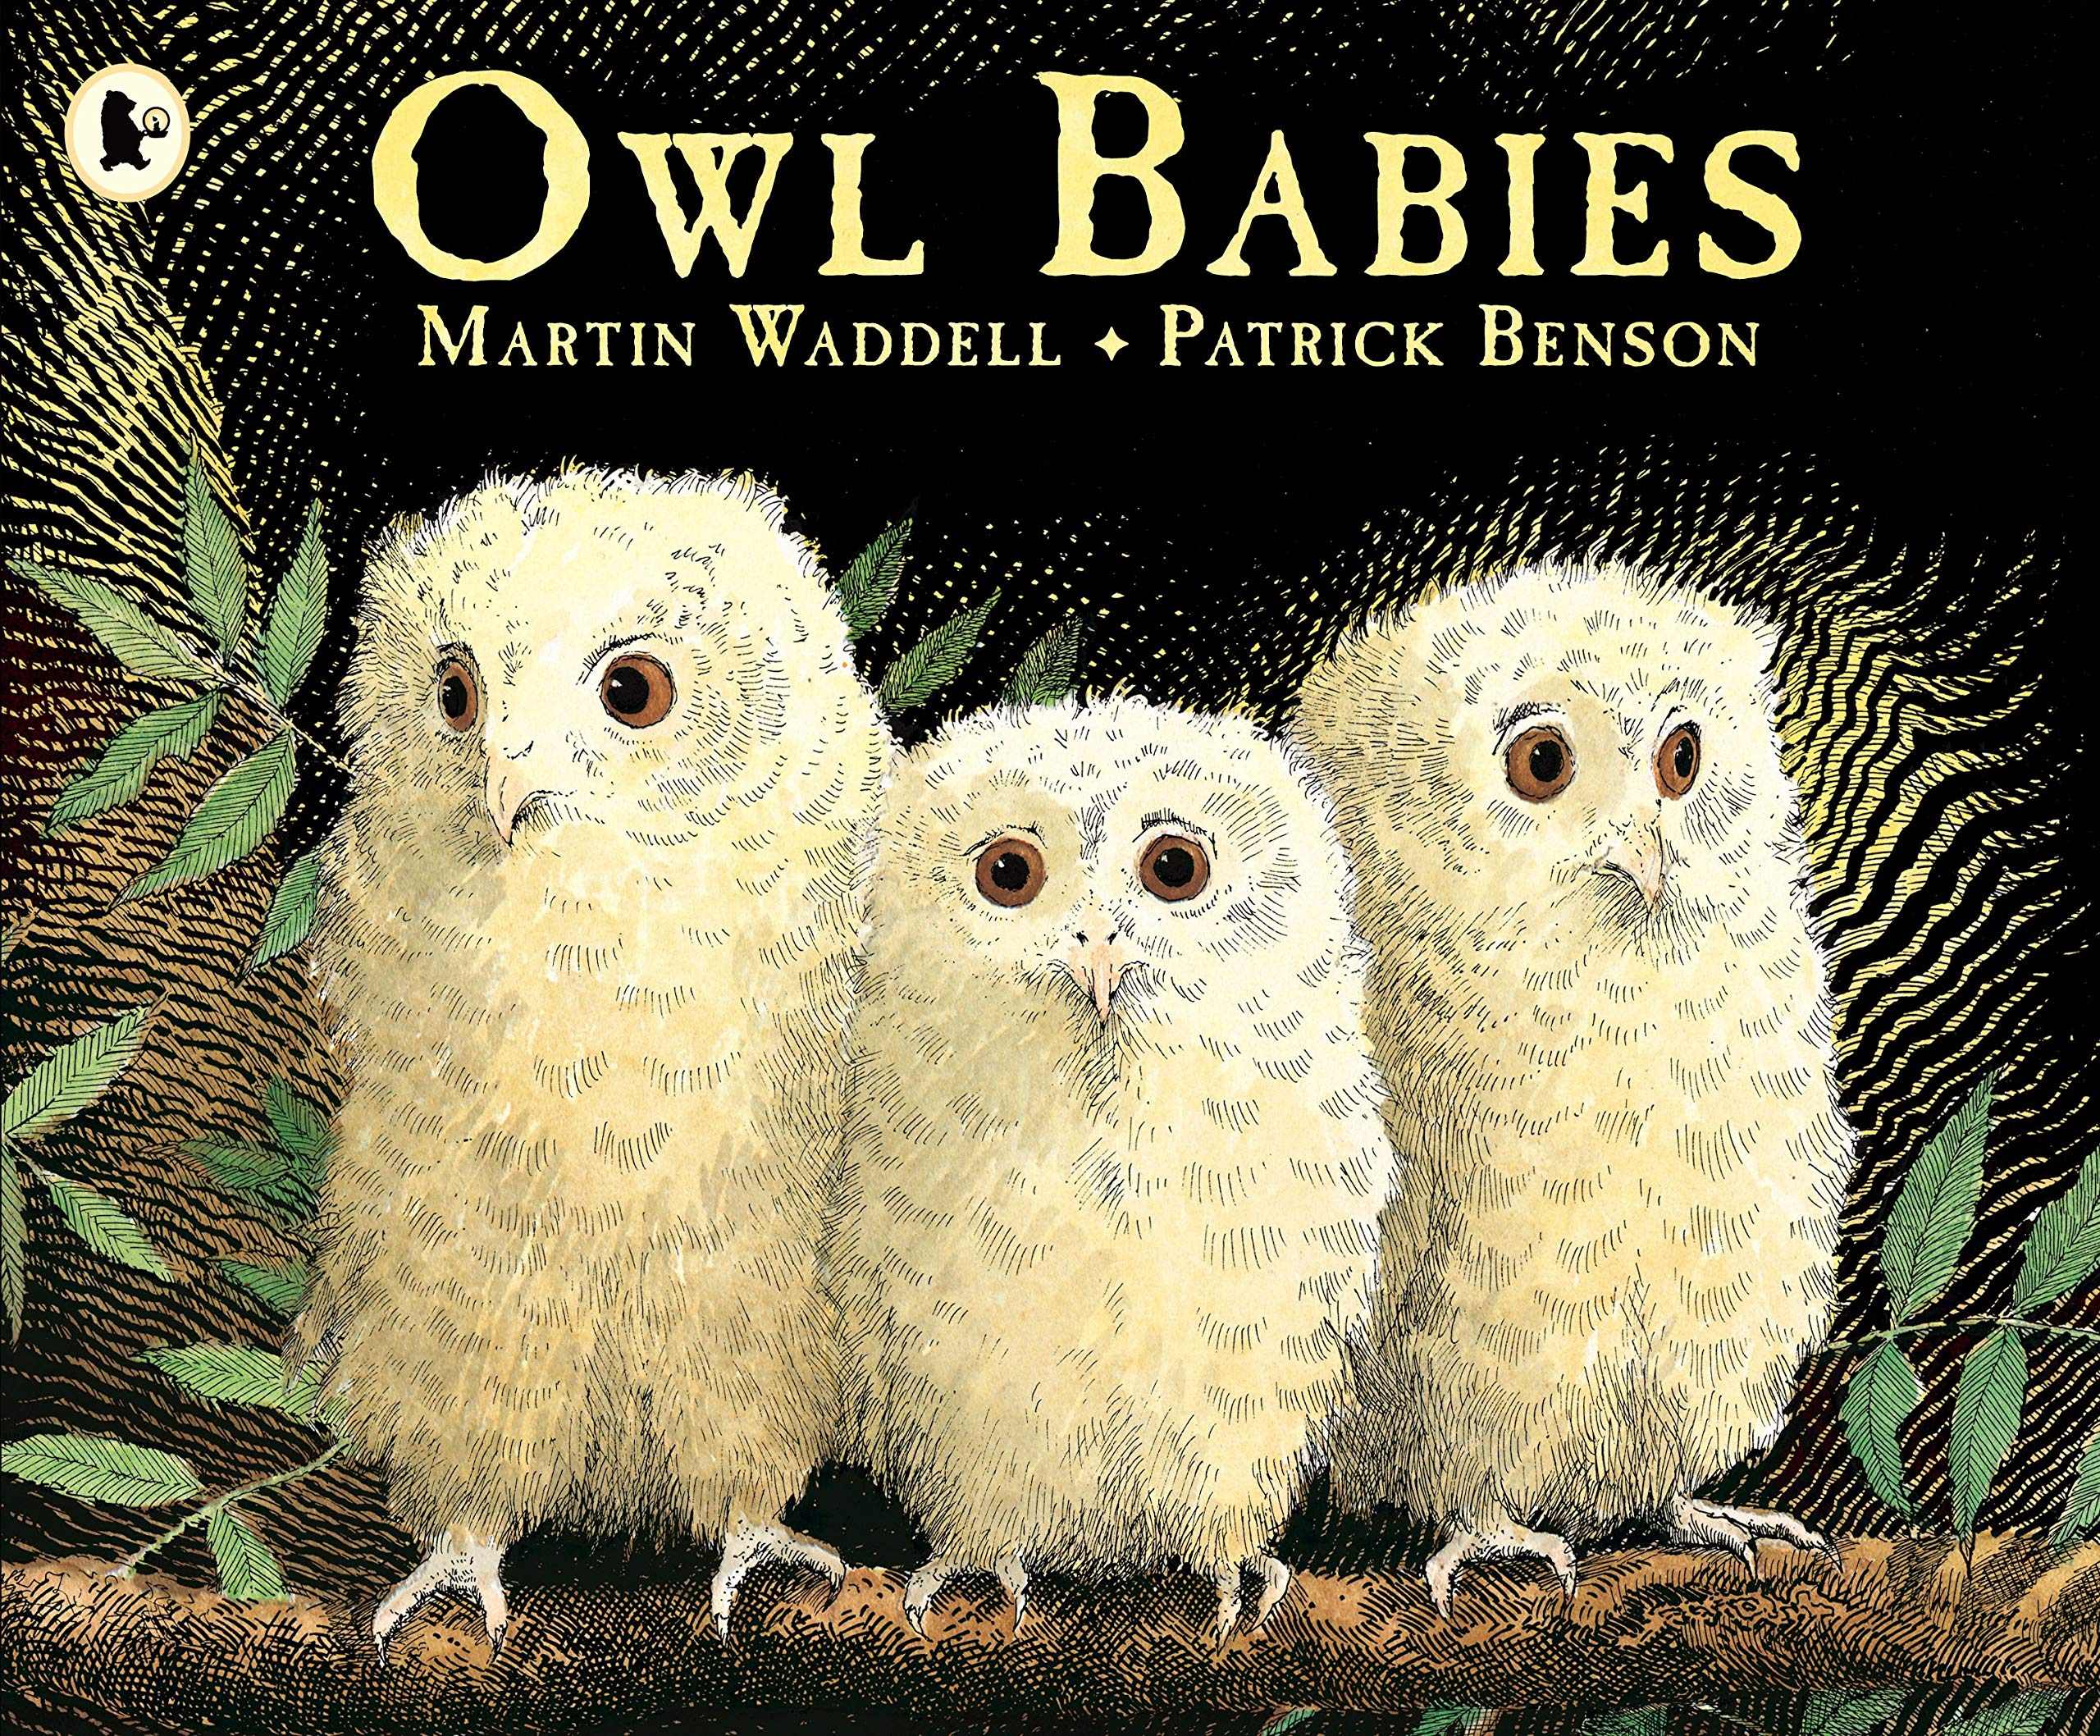 Owl Babies: 1: Amazon.co.uk: Martin Waddell, Patrick Benson ...